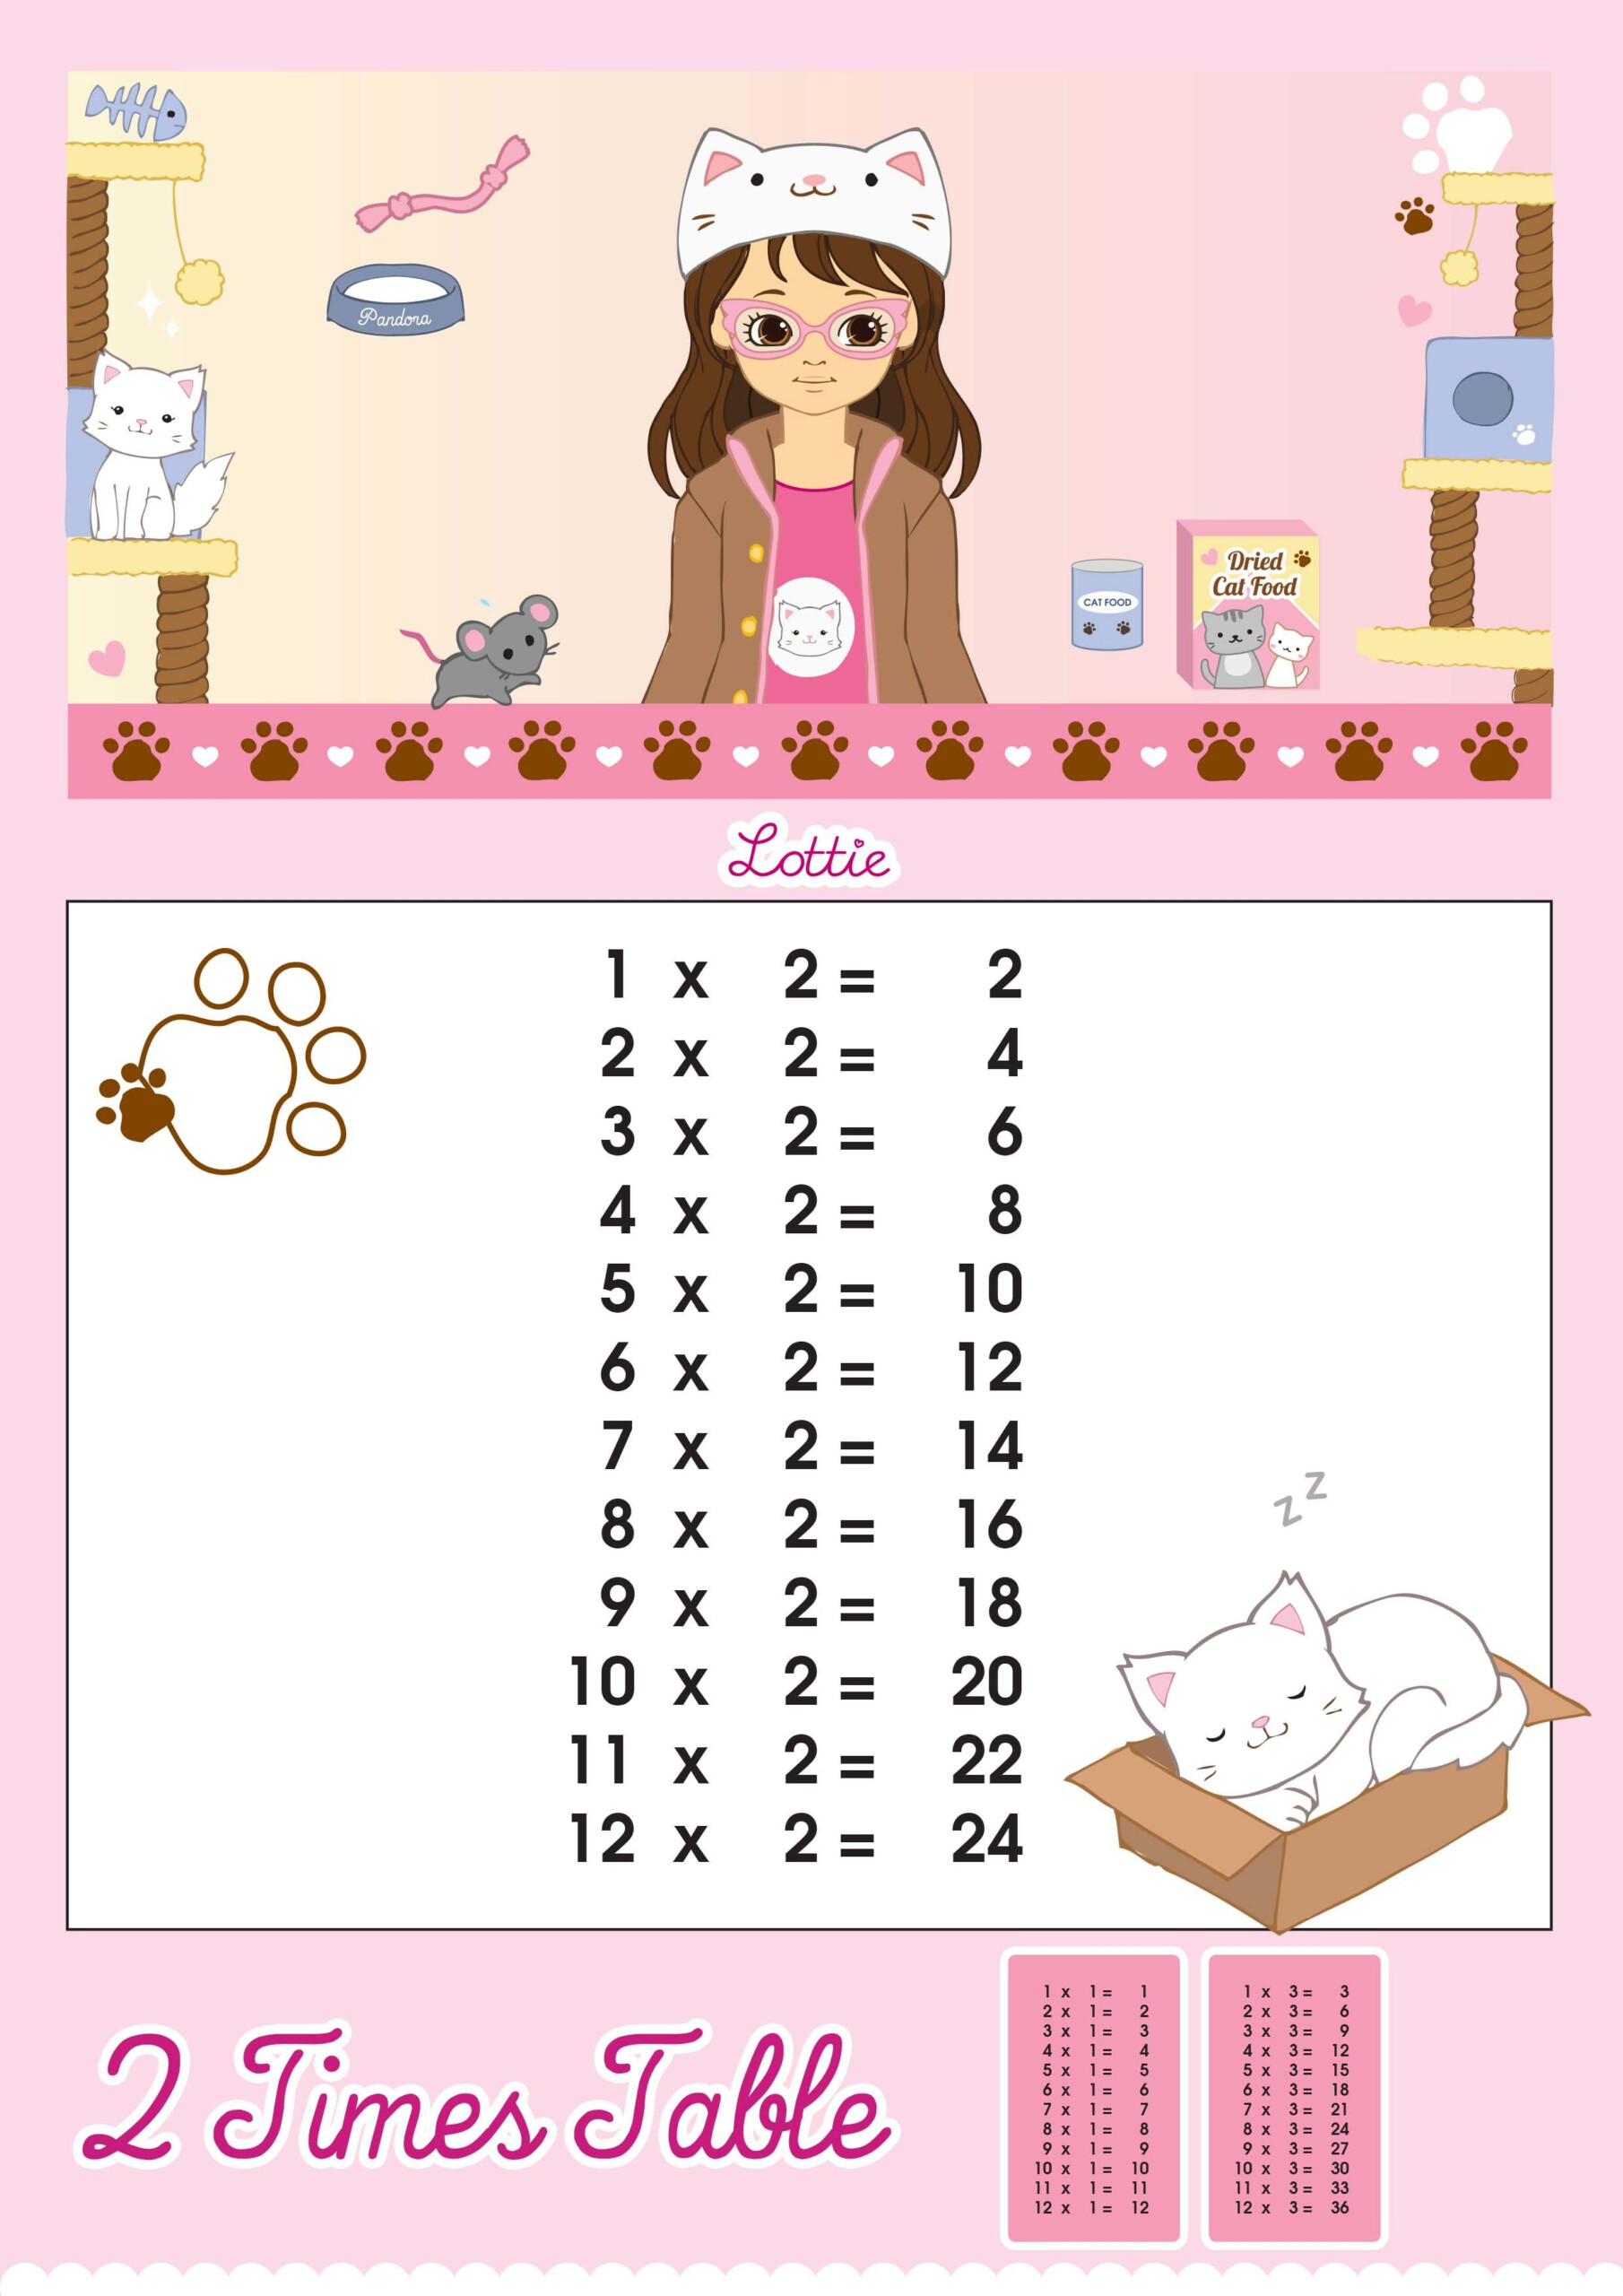 2 Times Table Multiplication Chart – Lottie Dolls within Printable 2 Multiplication Table